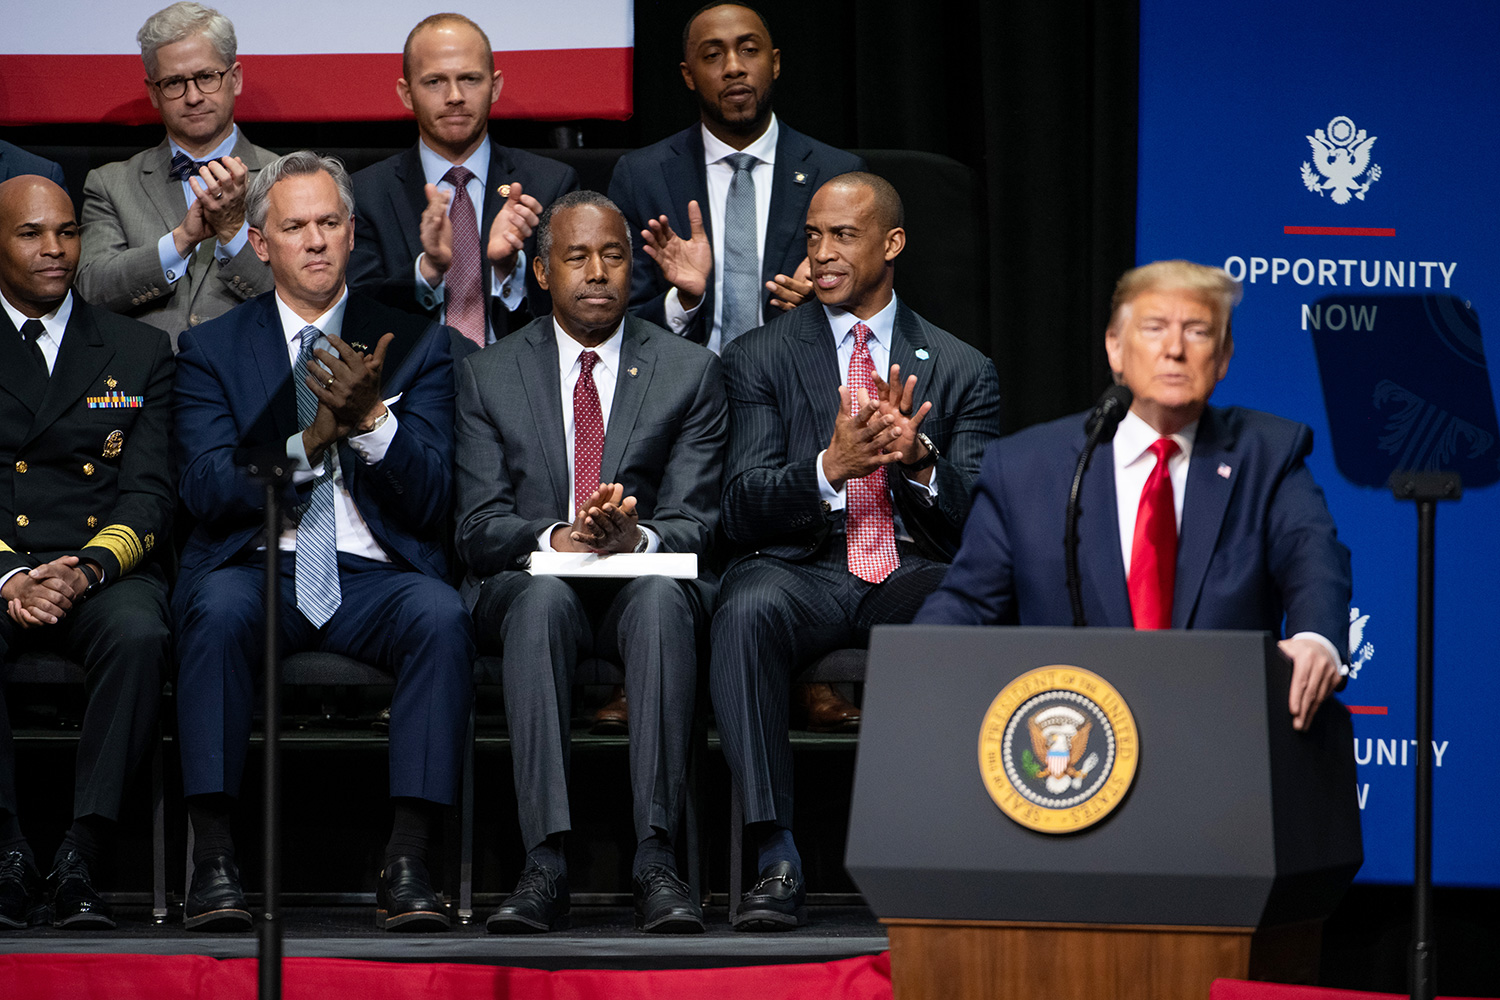 President Trump Speaks At Opportunity Now Summit In North Carolina